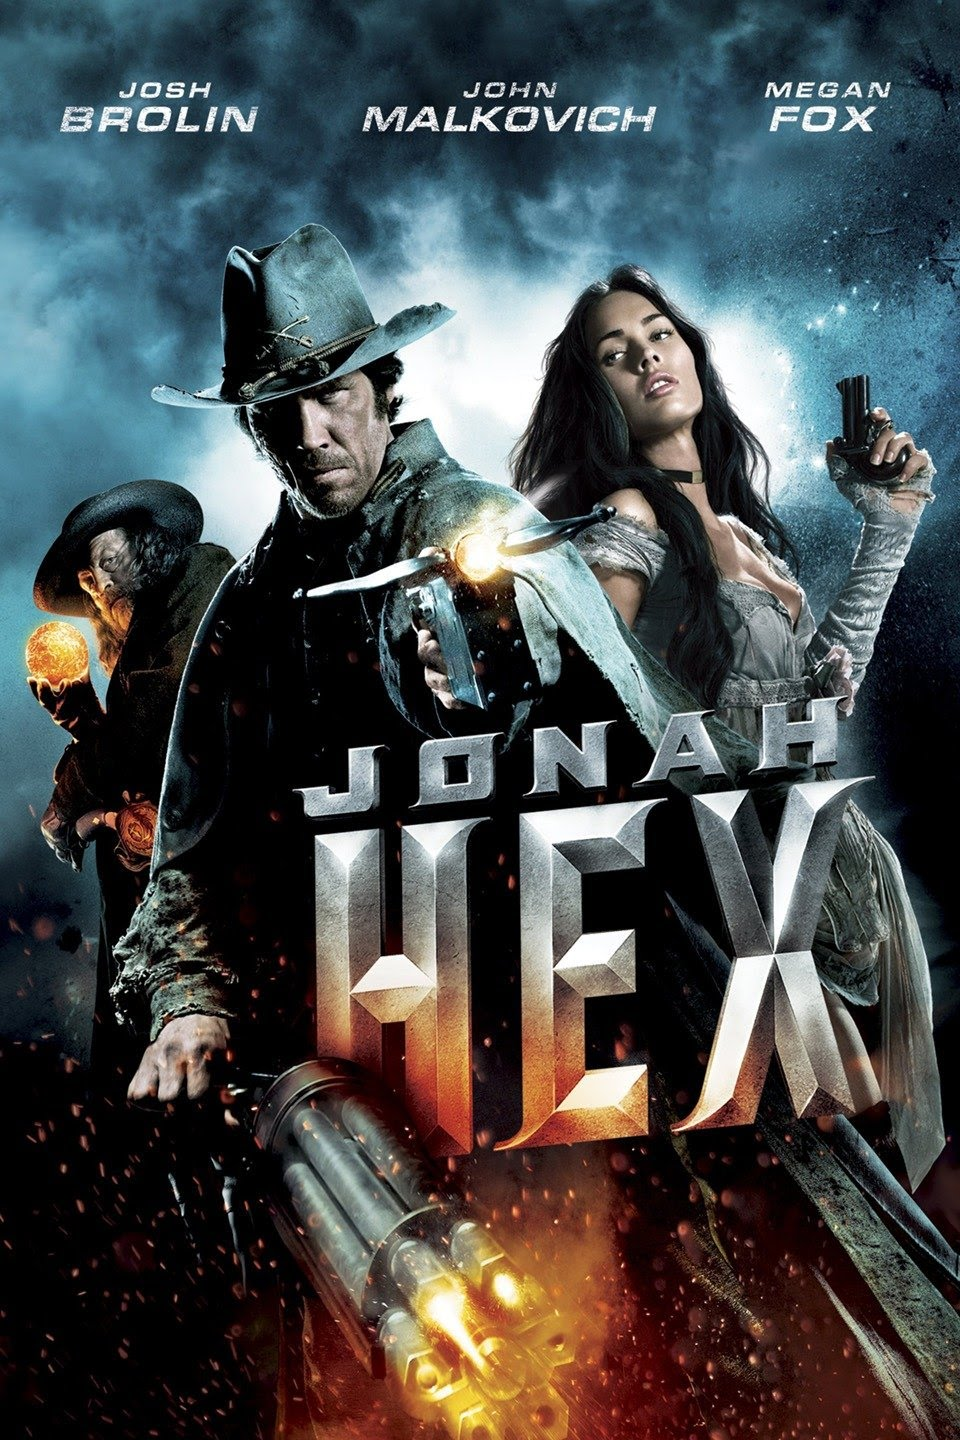 Download Jonah Hex (2010) Dual Audio Hindi 480p [300MB] | 720p [700MB] | 1080p [1.6GB]